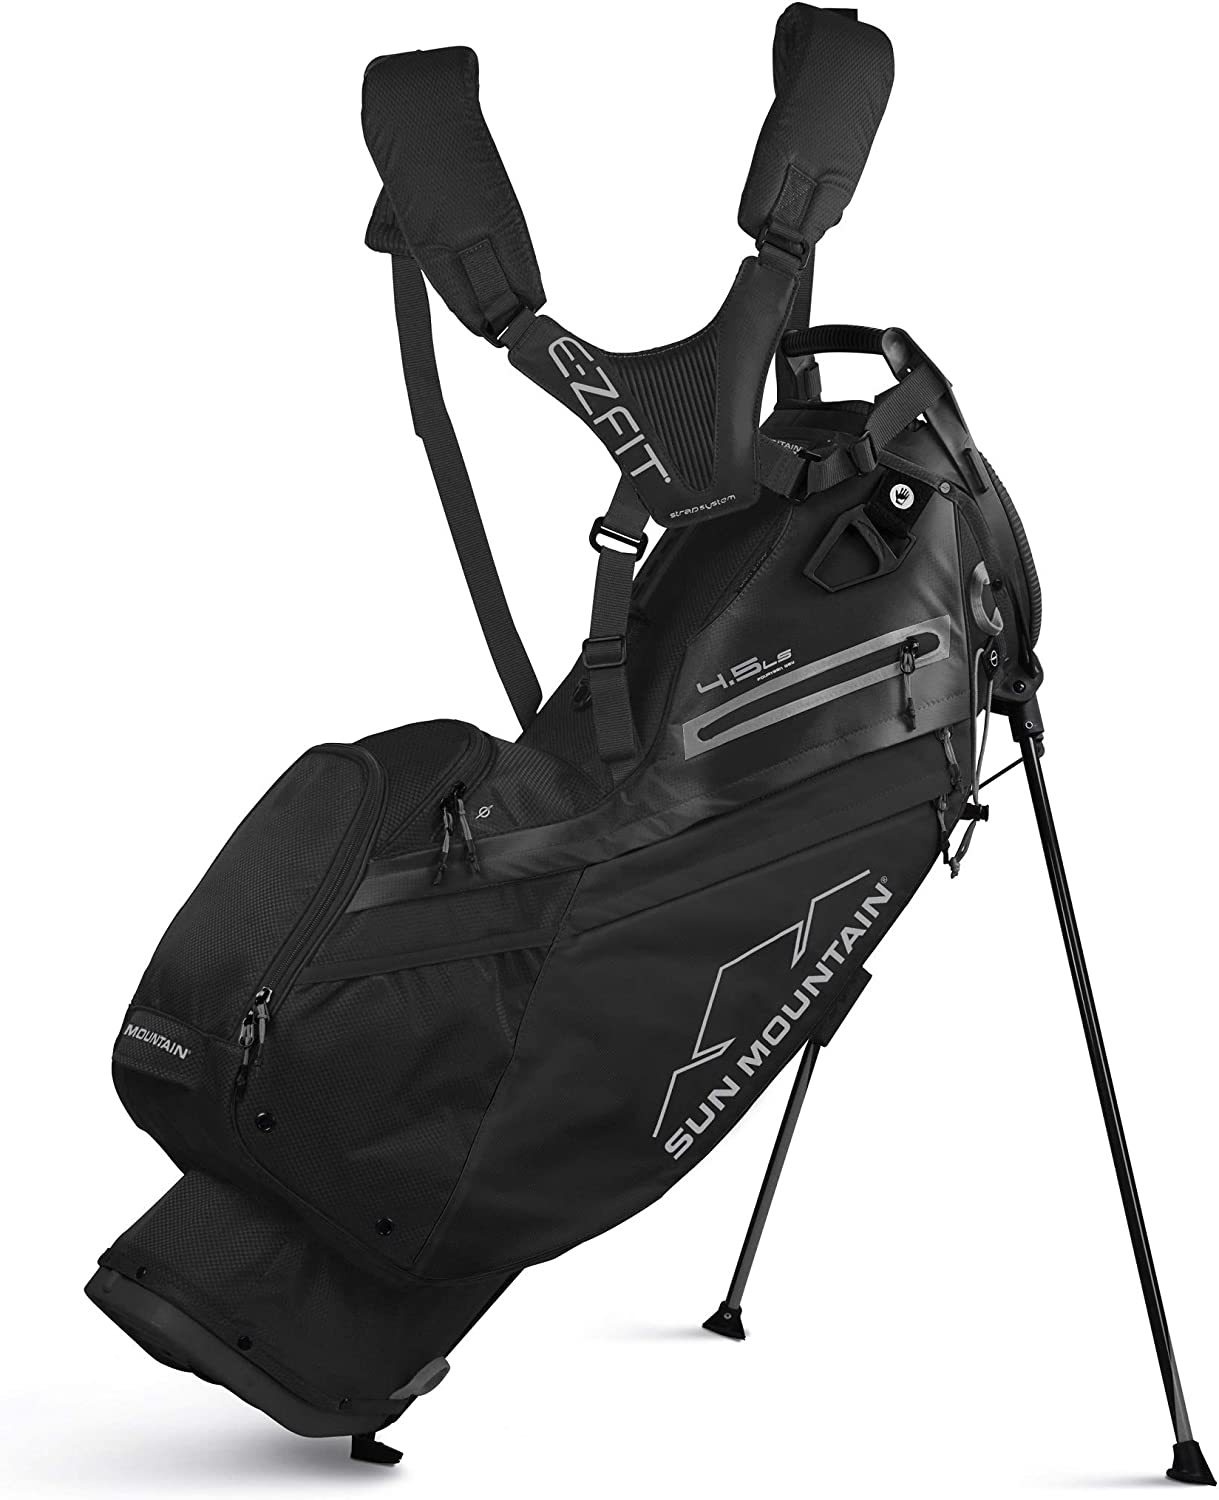 Sun Mountain 2020 4.5 Max 88% OFF Ls 14-Way Bag New popularity Stand Golf